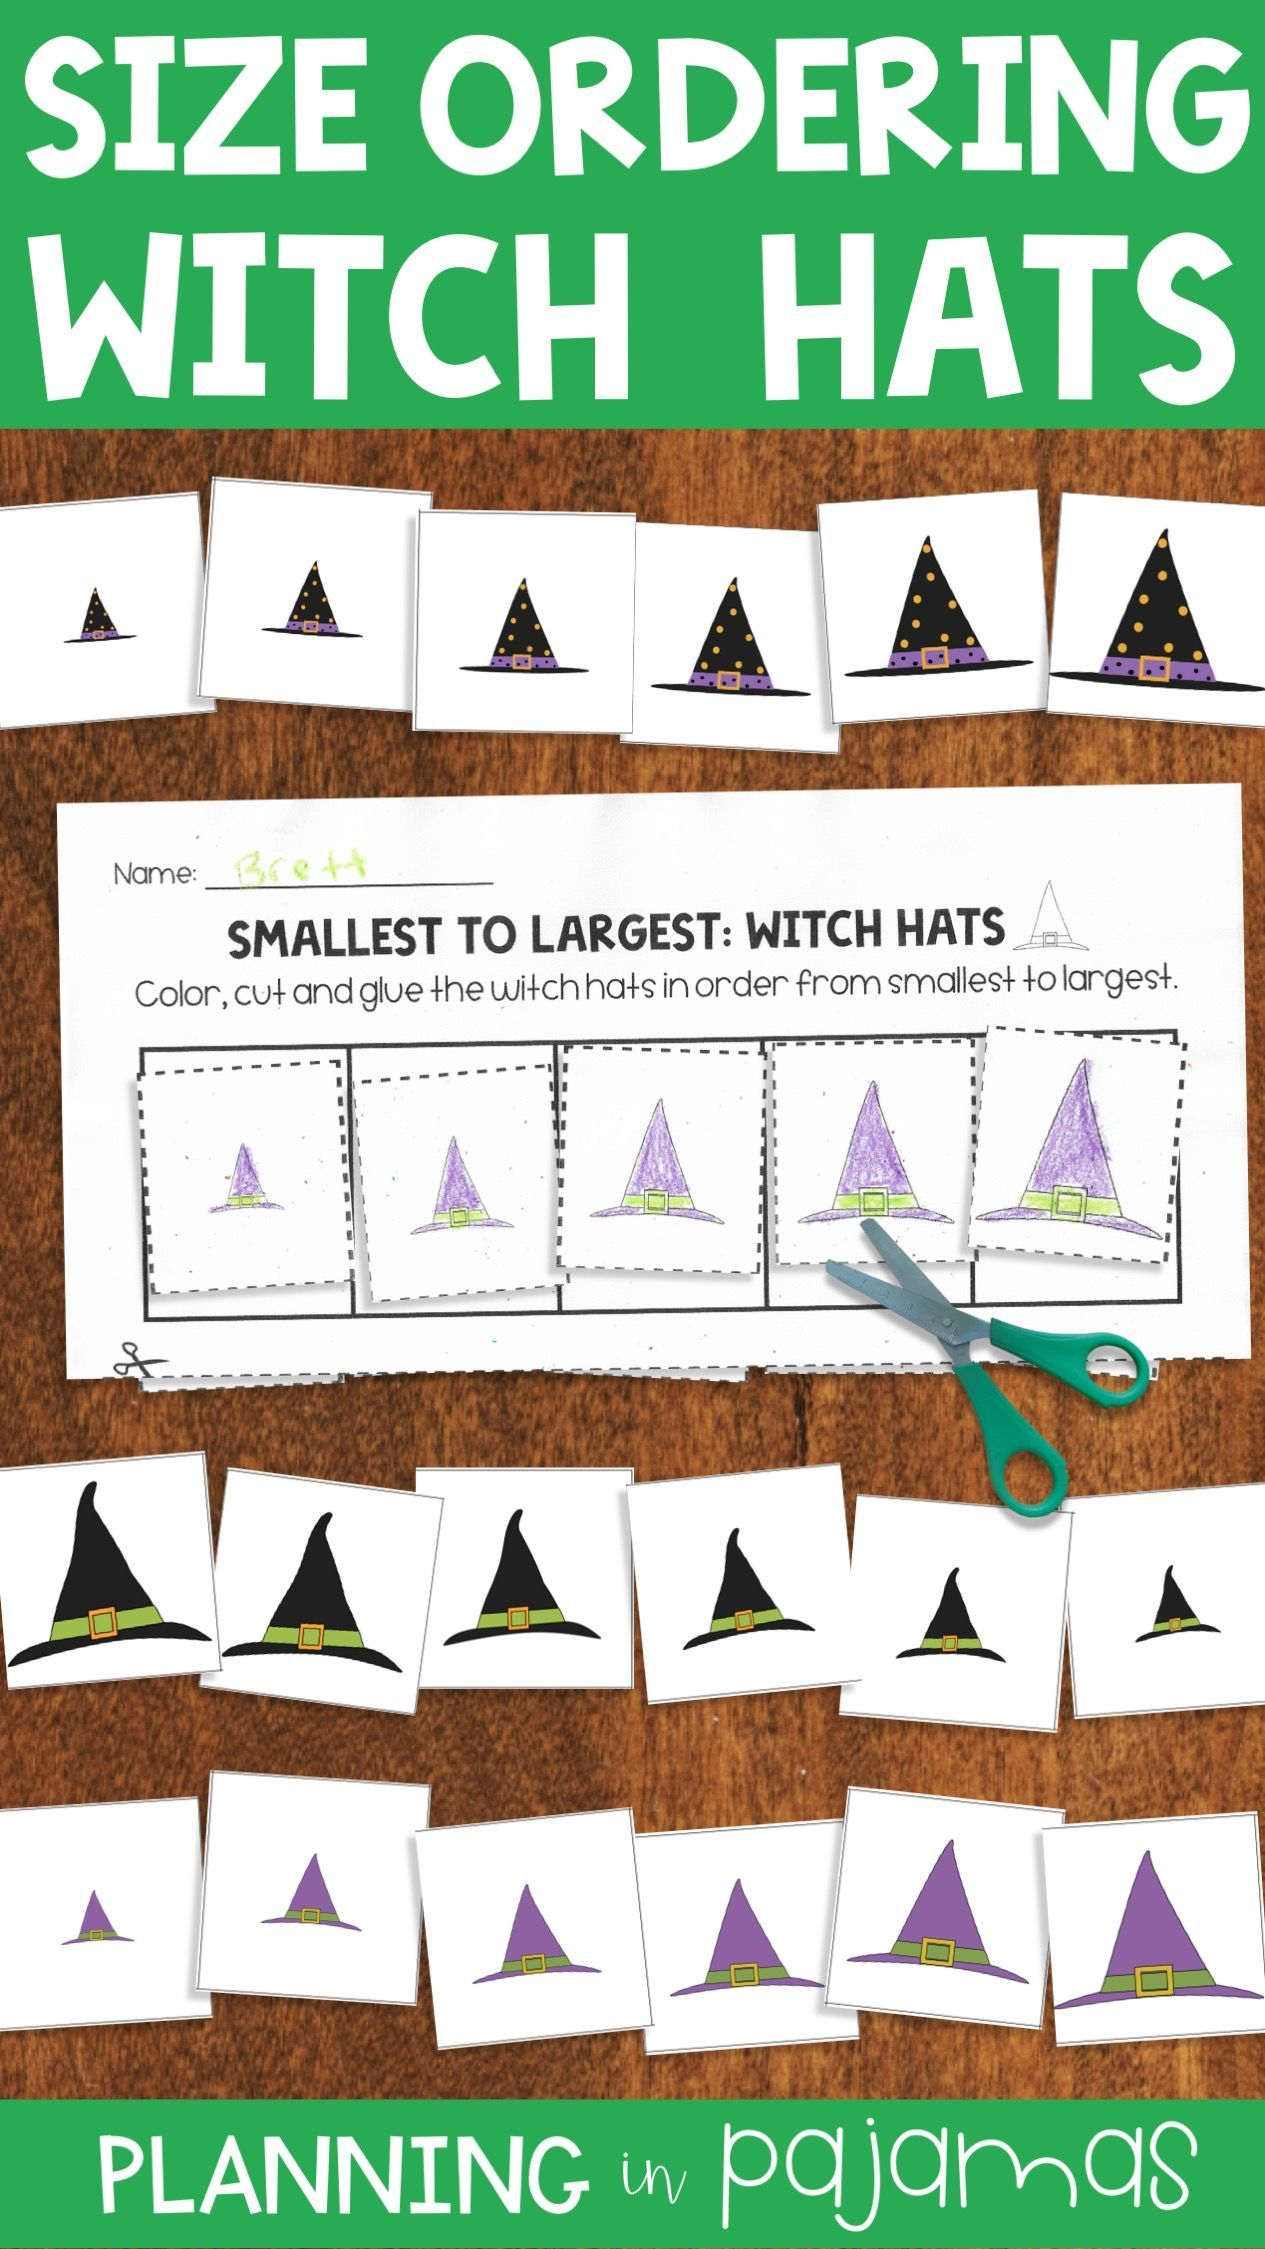 Witch Hats Size Ordering From Smallest To Largest